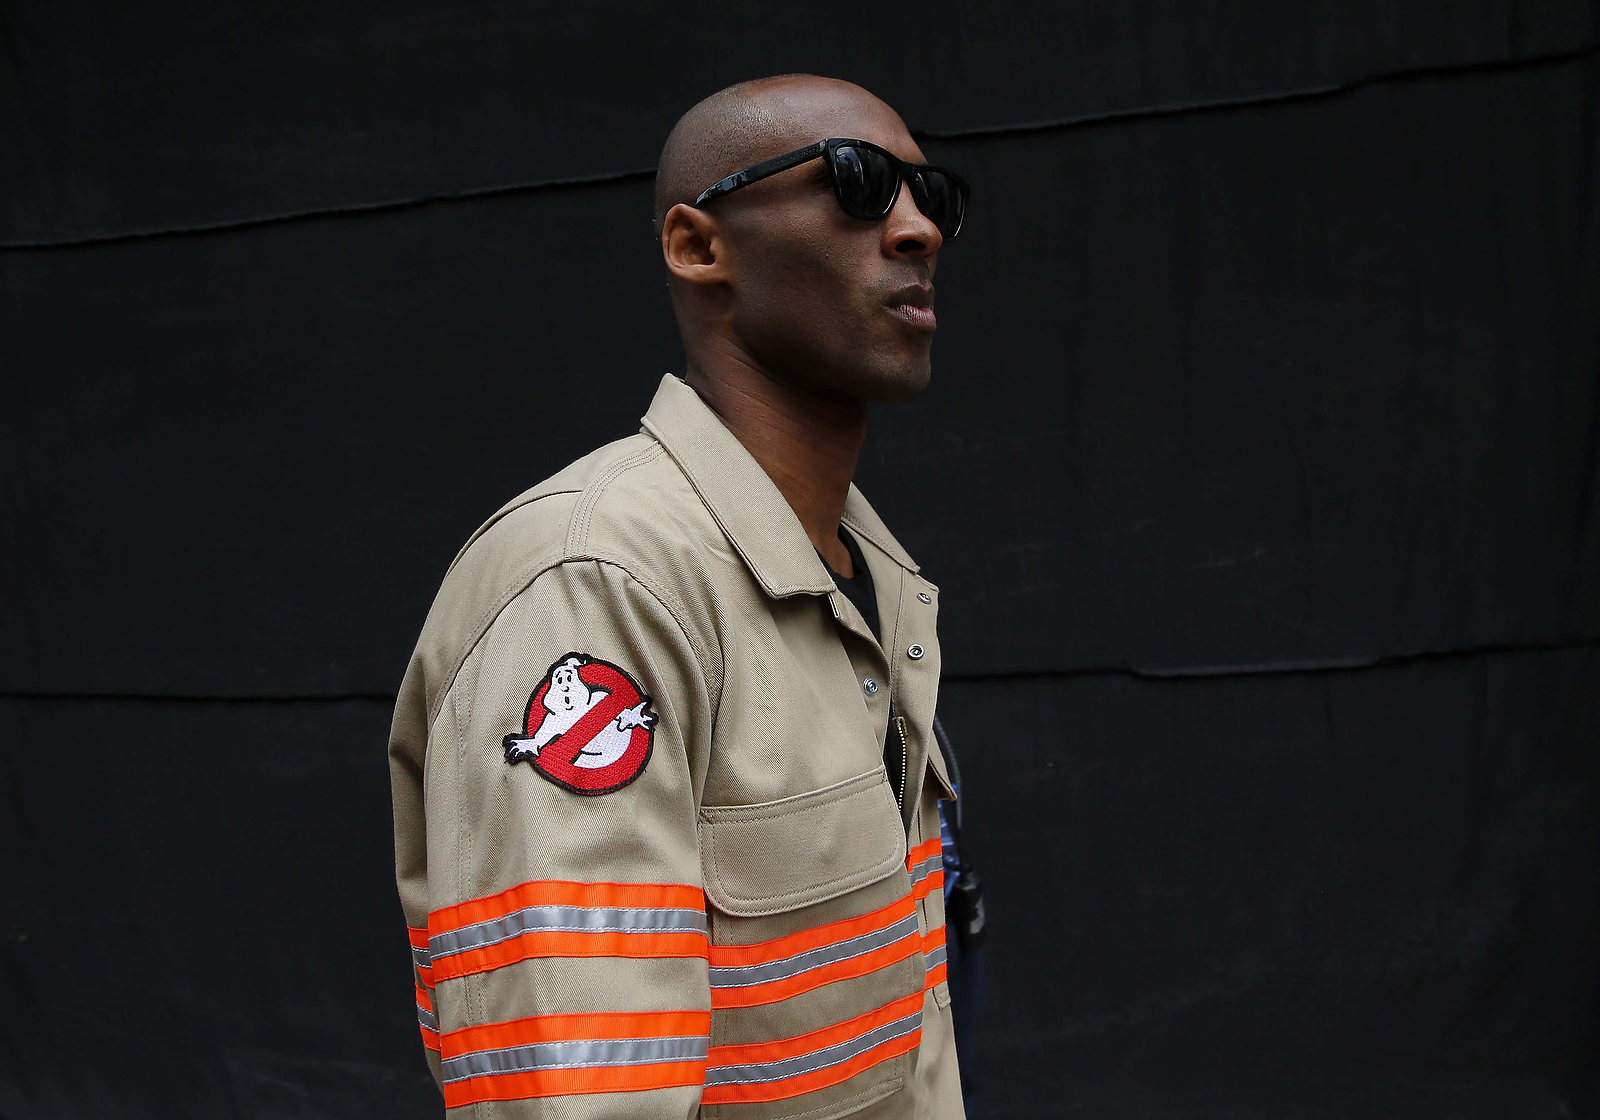 20160429_JJ_Kobe_Ghostbusters8206 copy